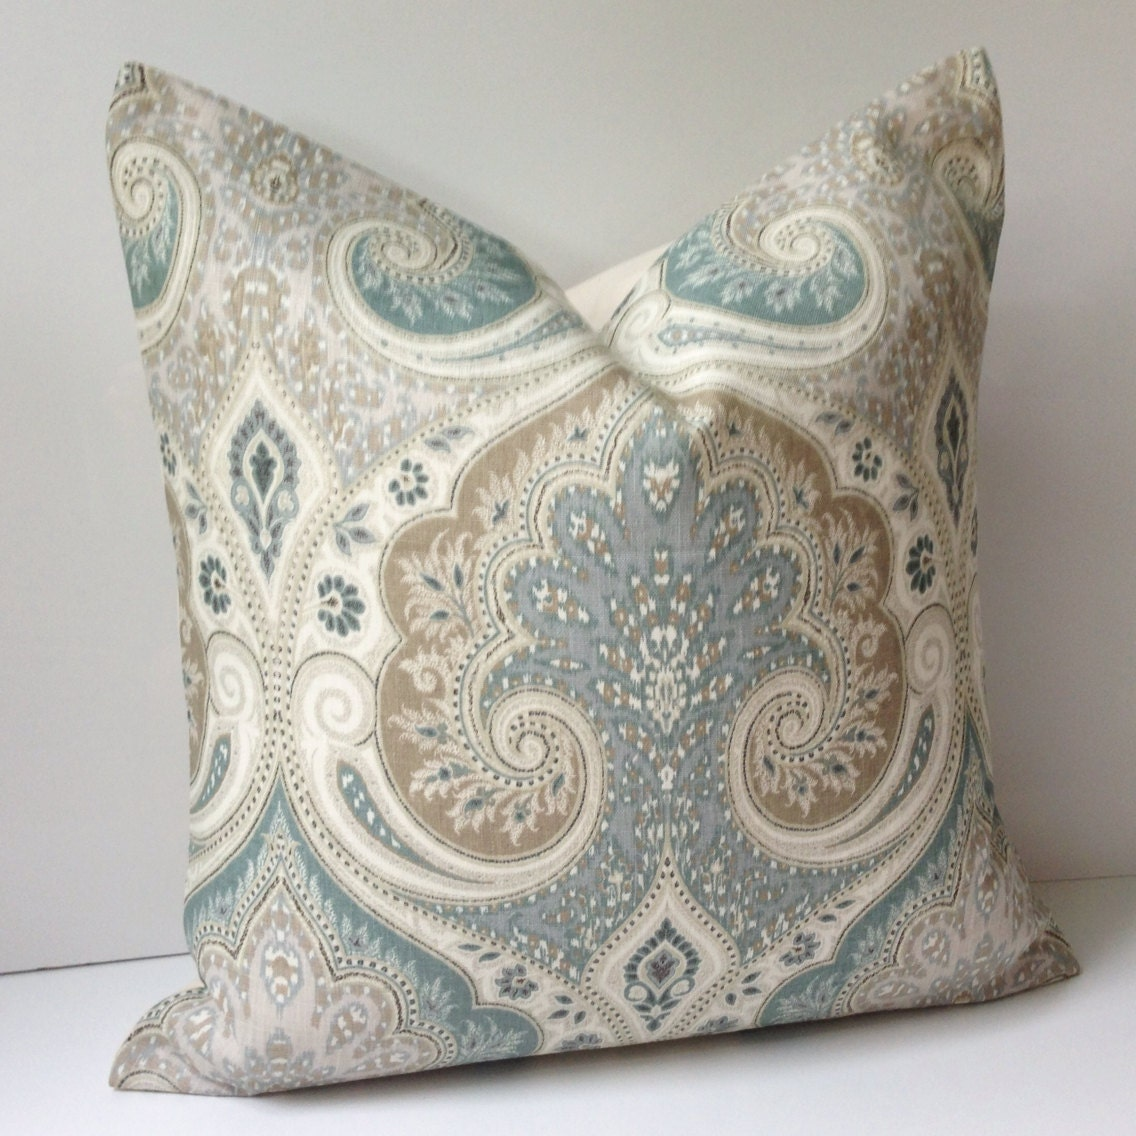 Damask pillow cover decorative throw pillow seafoam cushion - Decorative throw pillows ...